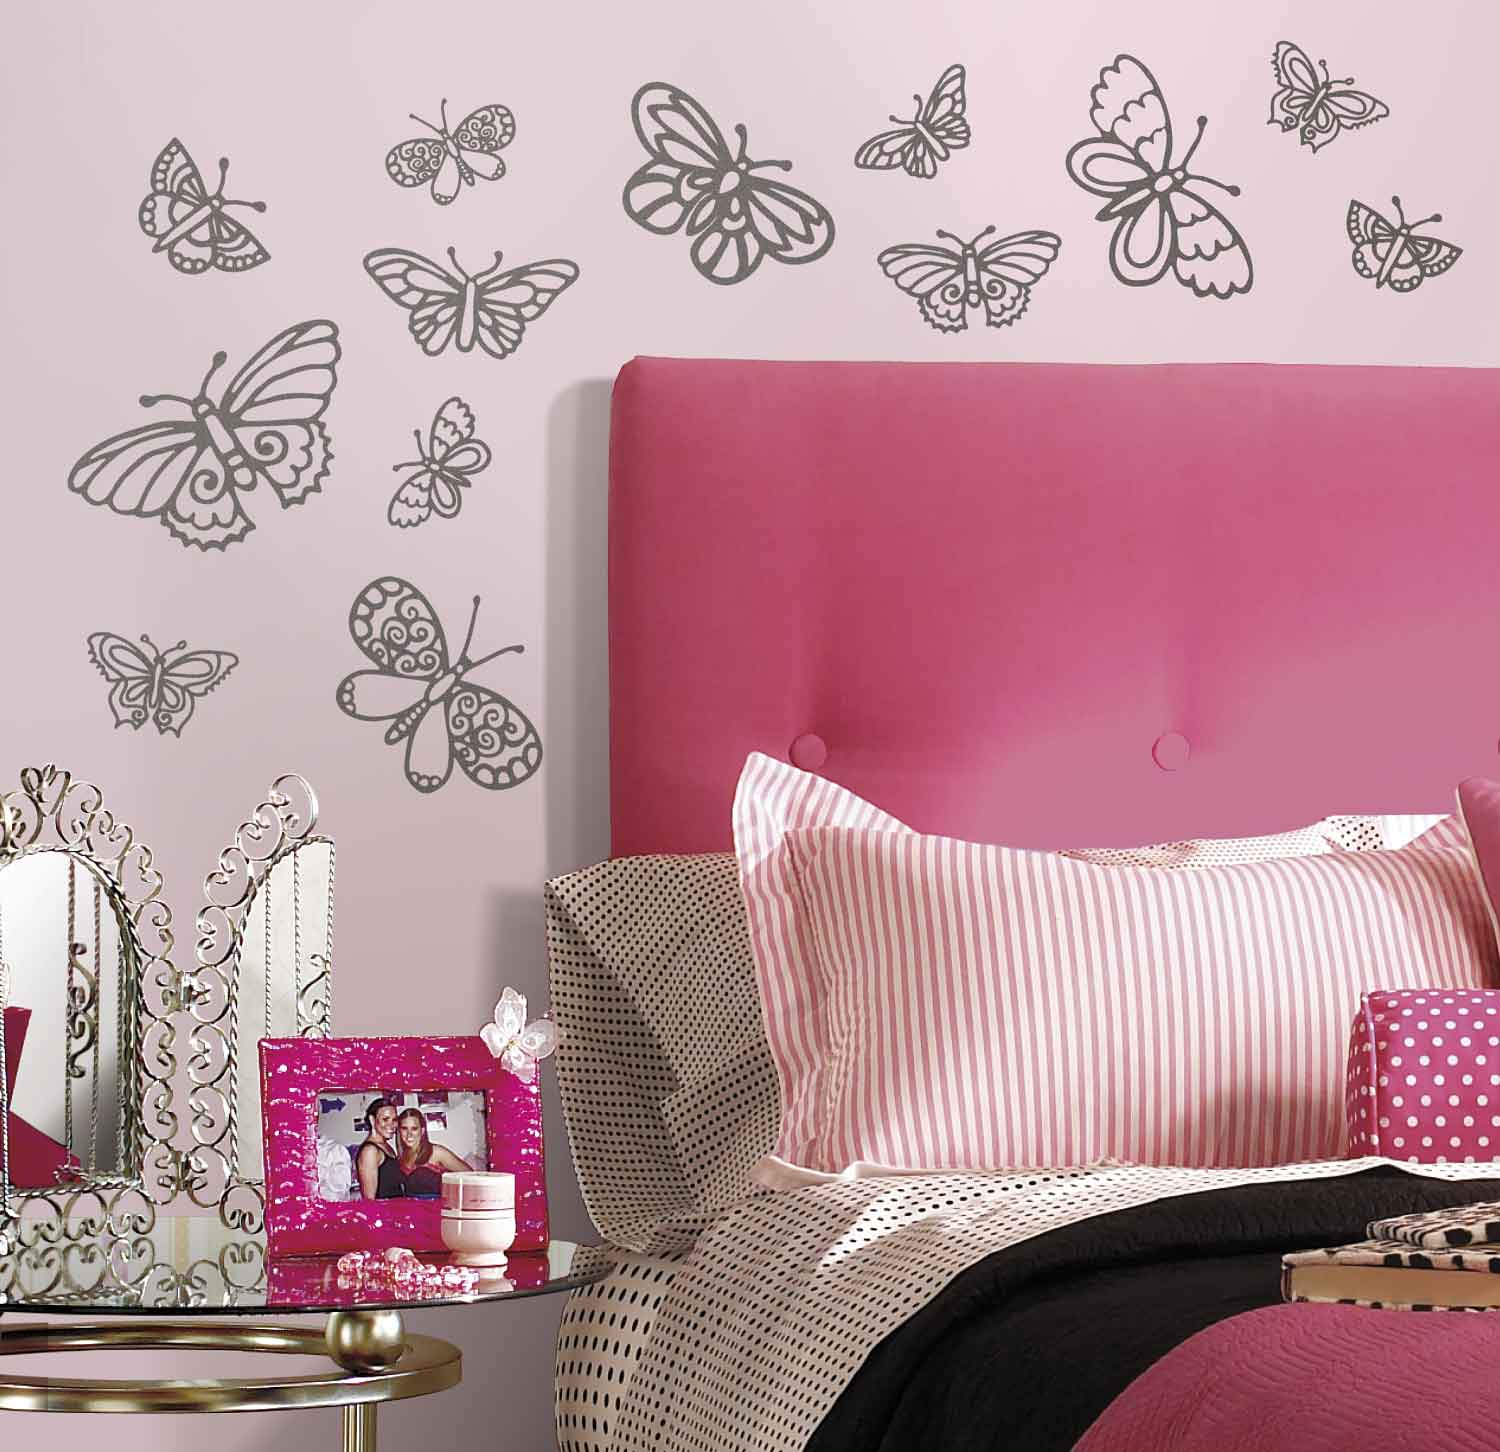 roommates wandsticker glitzer schmetterlinge wohnzimmer. Black Bedroom Furniture Sets. Home Design Ideas